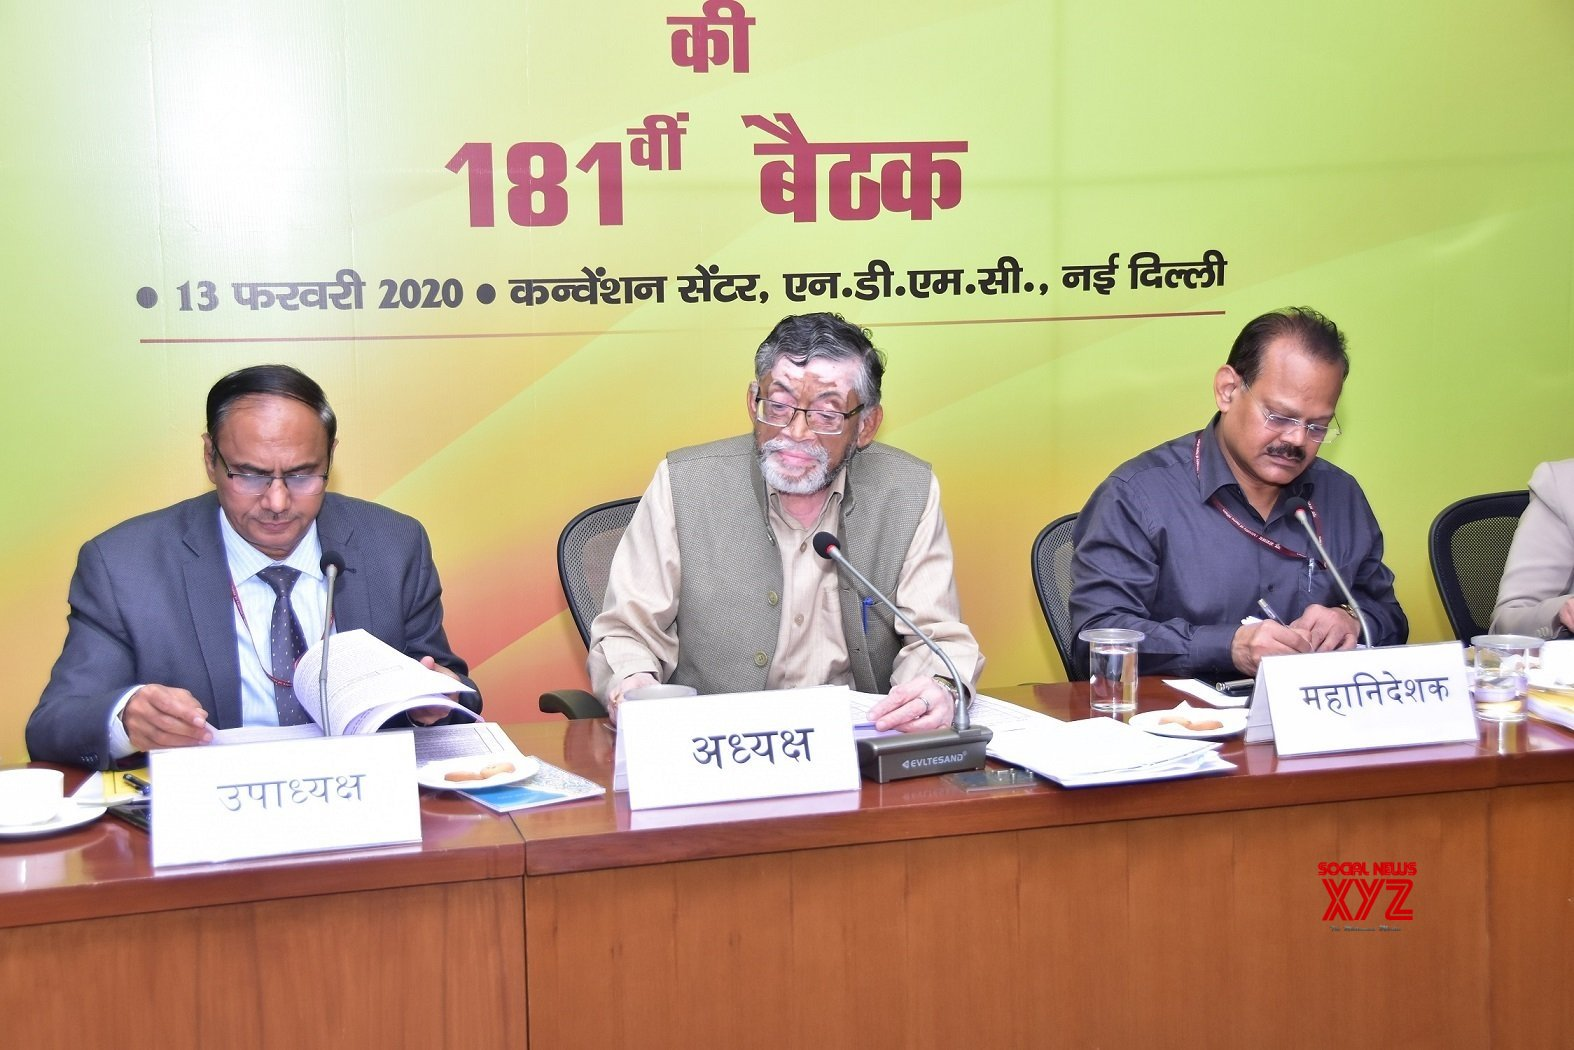 New Delhi: ESI Corporation meeting - Santosh Gangwar #Gallery